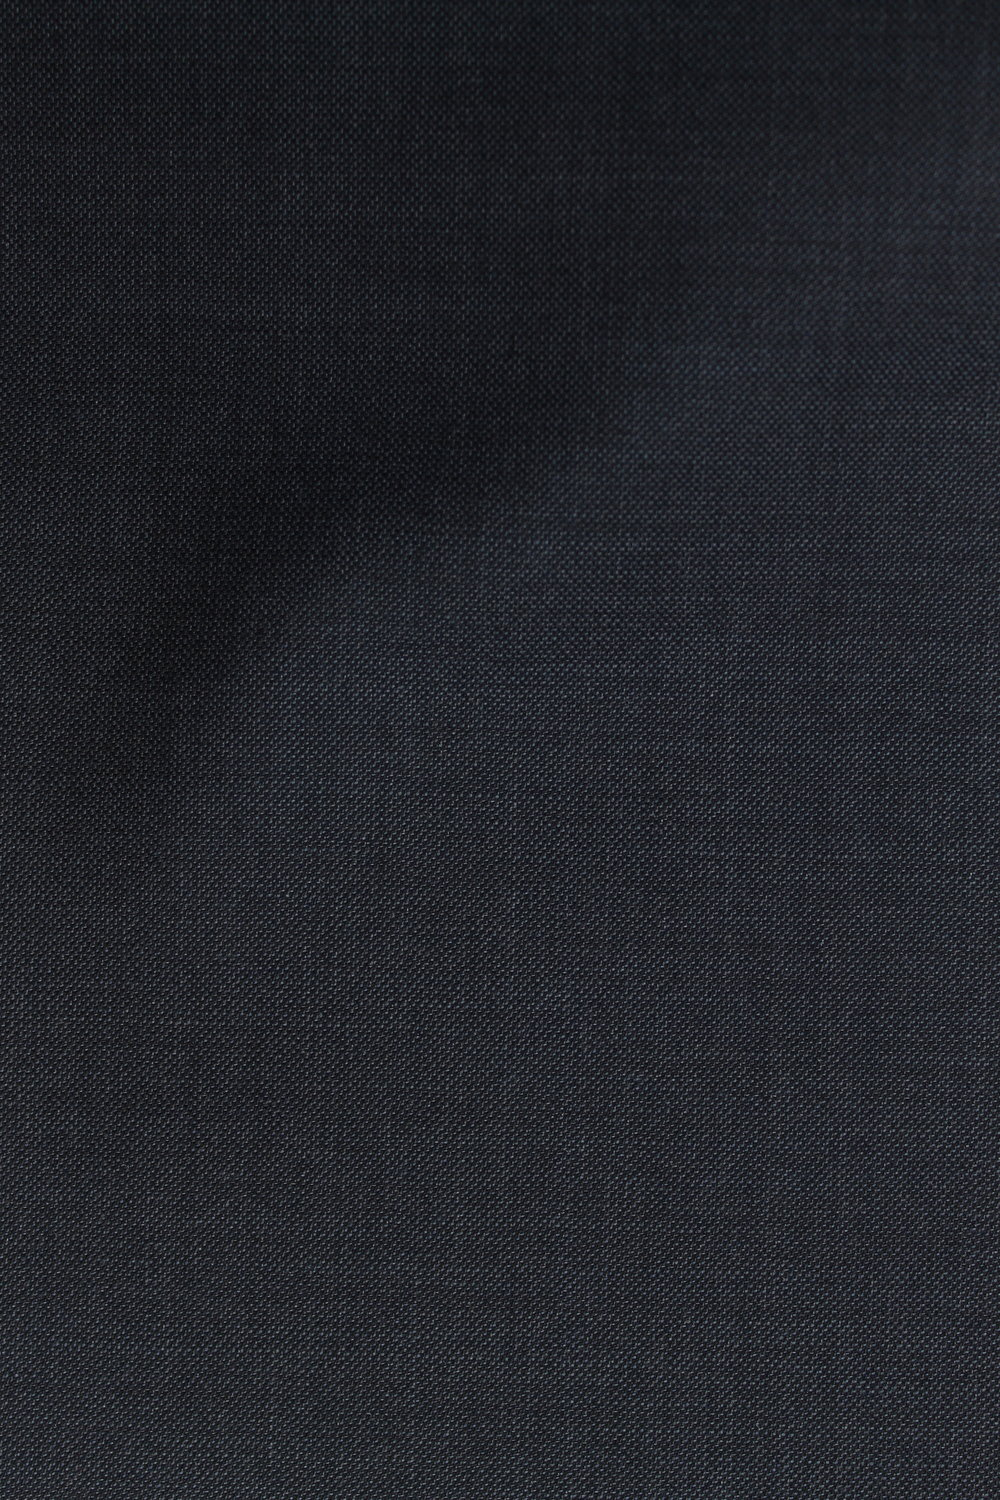 7180 Charcoal Navy Worsted 270g.JPG